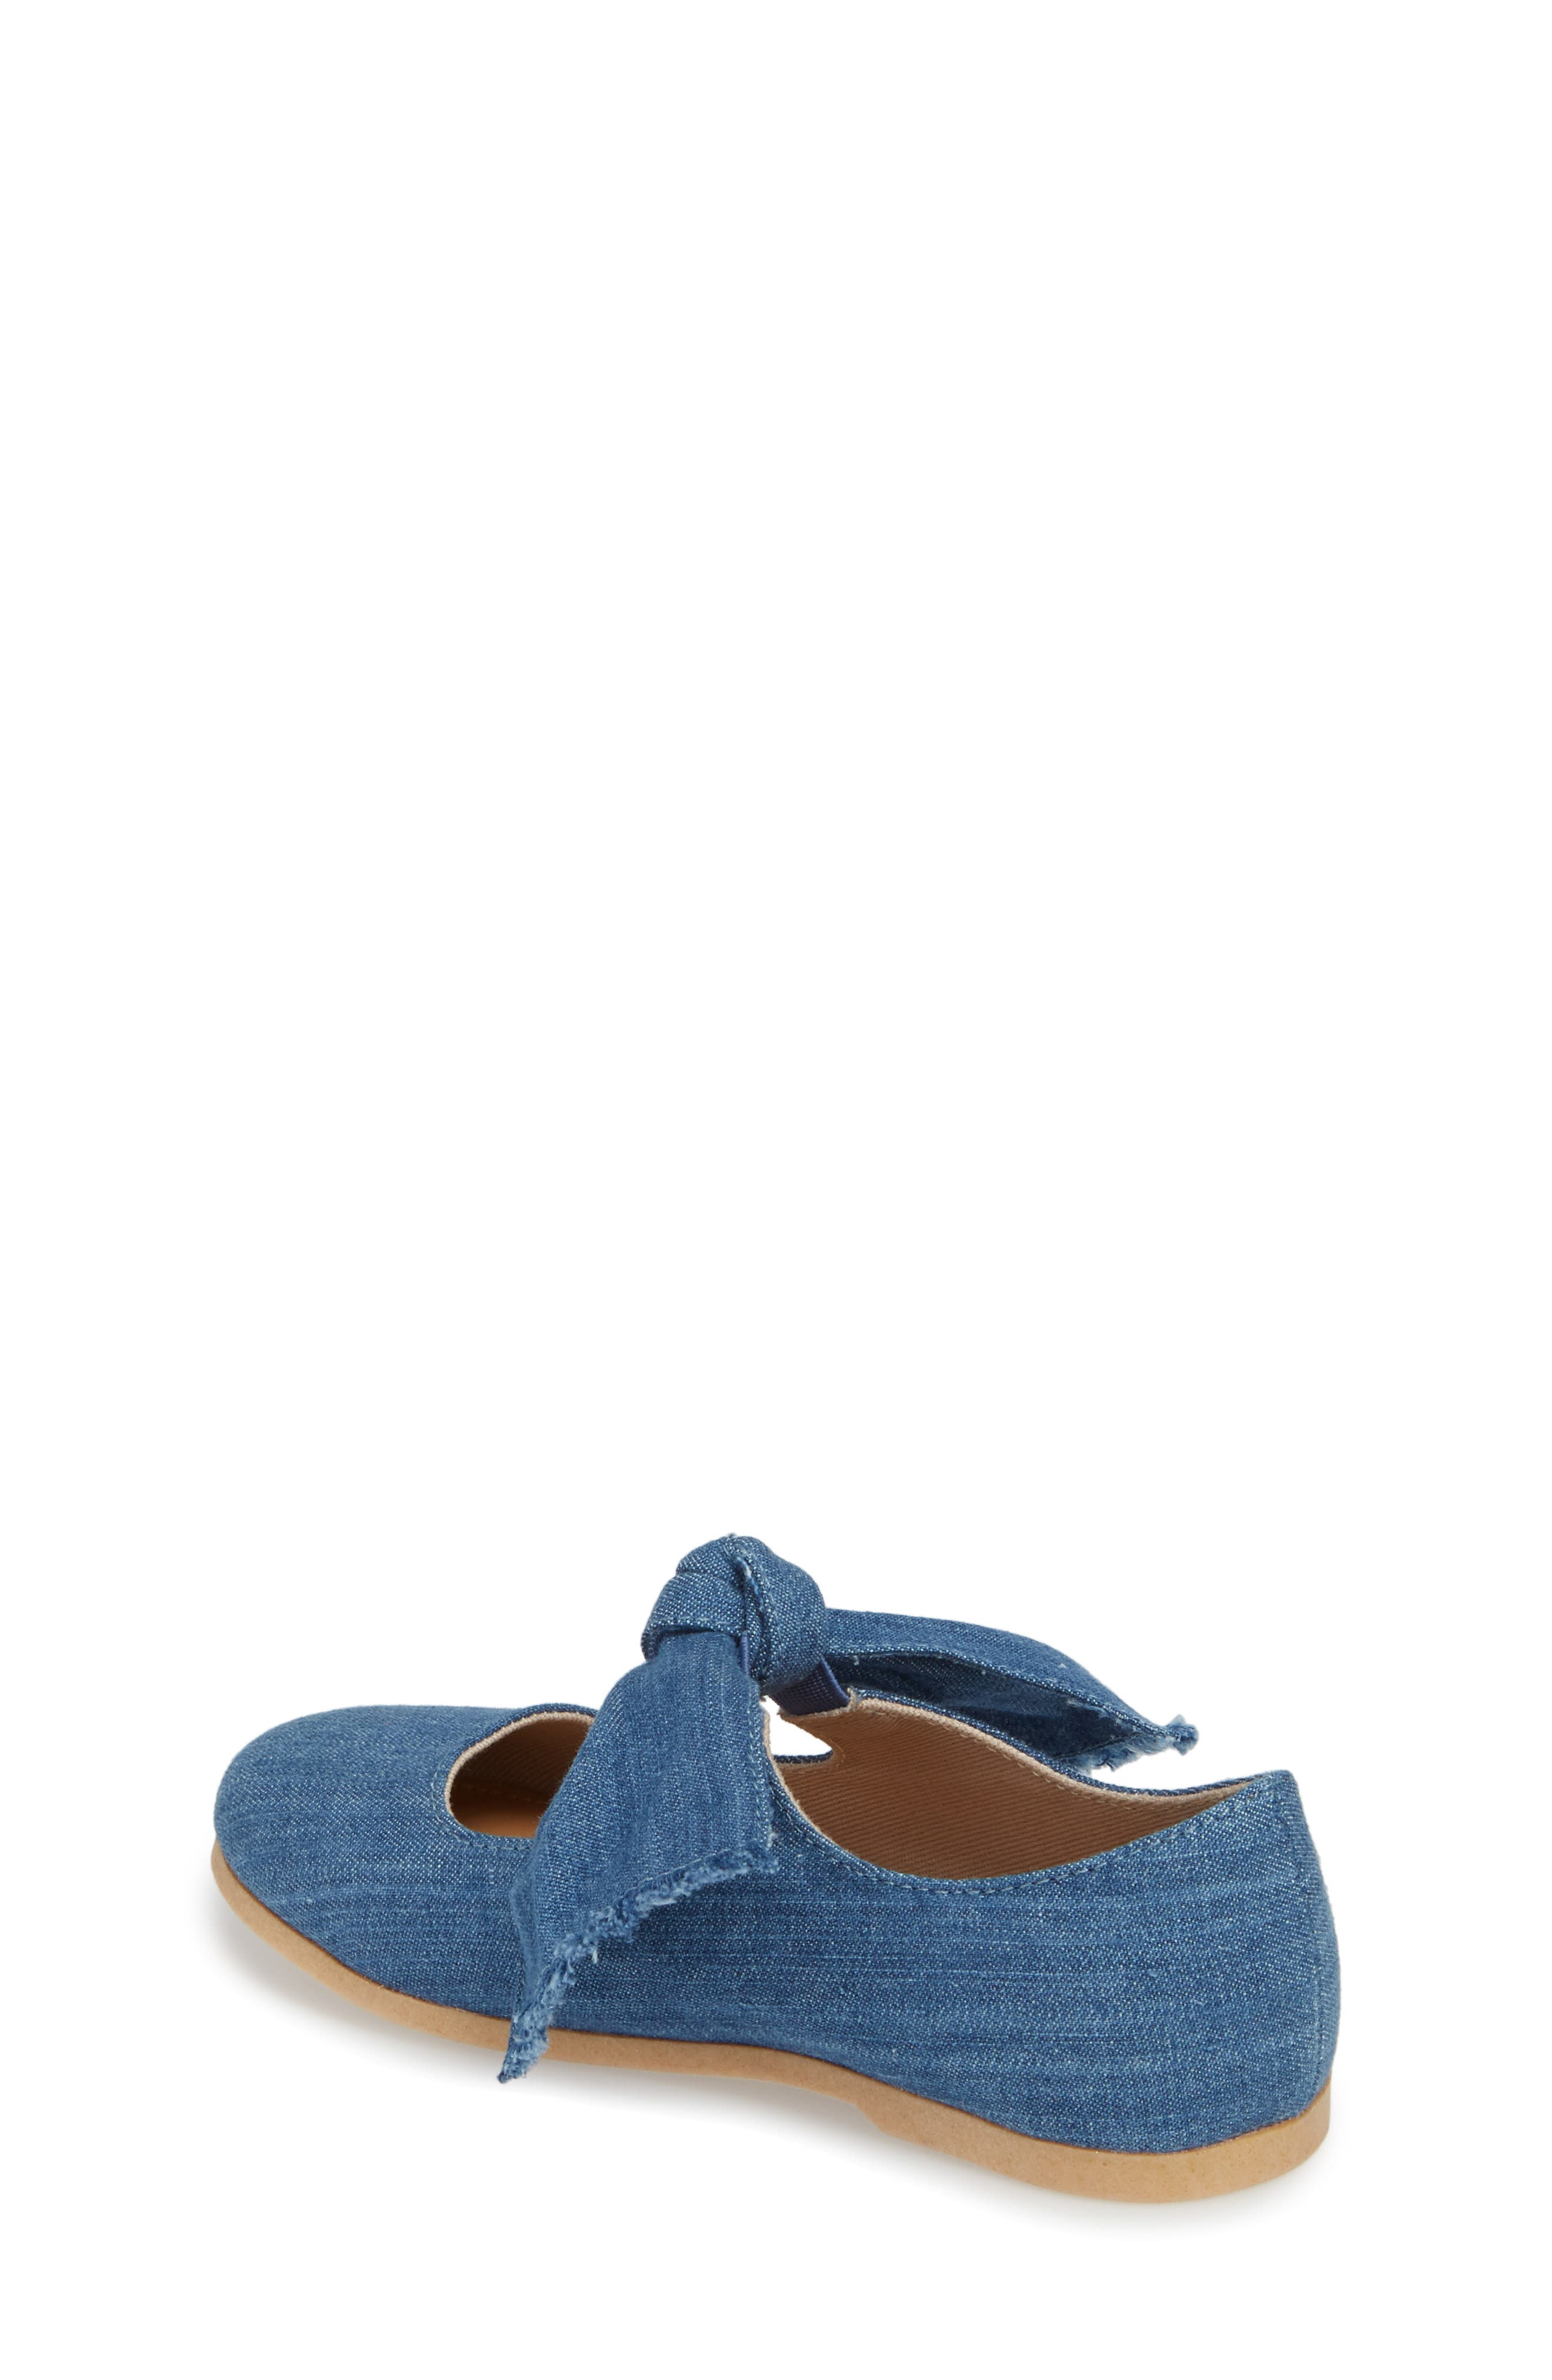 Helina Bow Mary Jane Flat,                             Alternate thumbnail 2, color,                             Chambray Fabric